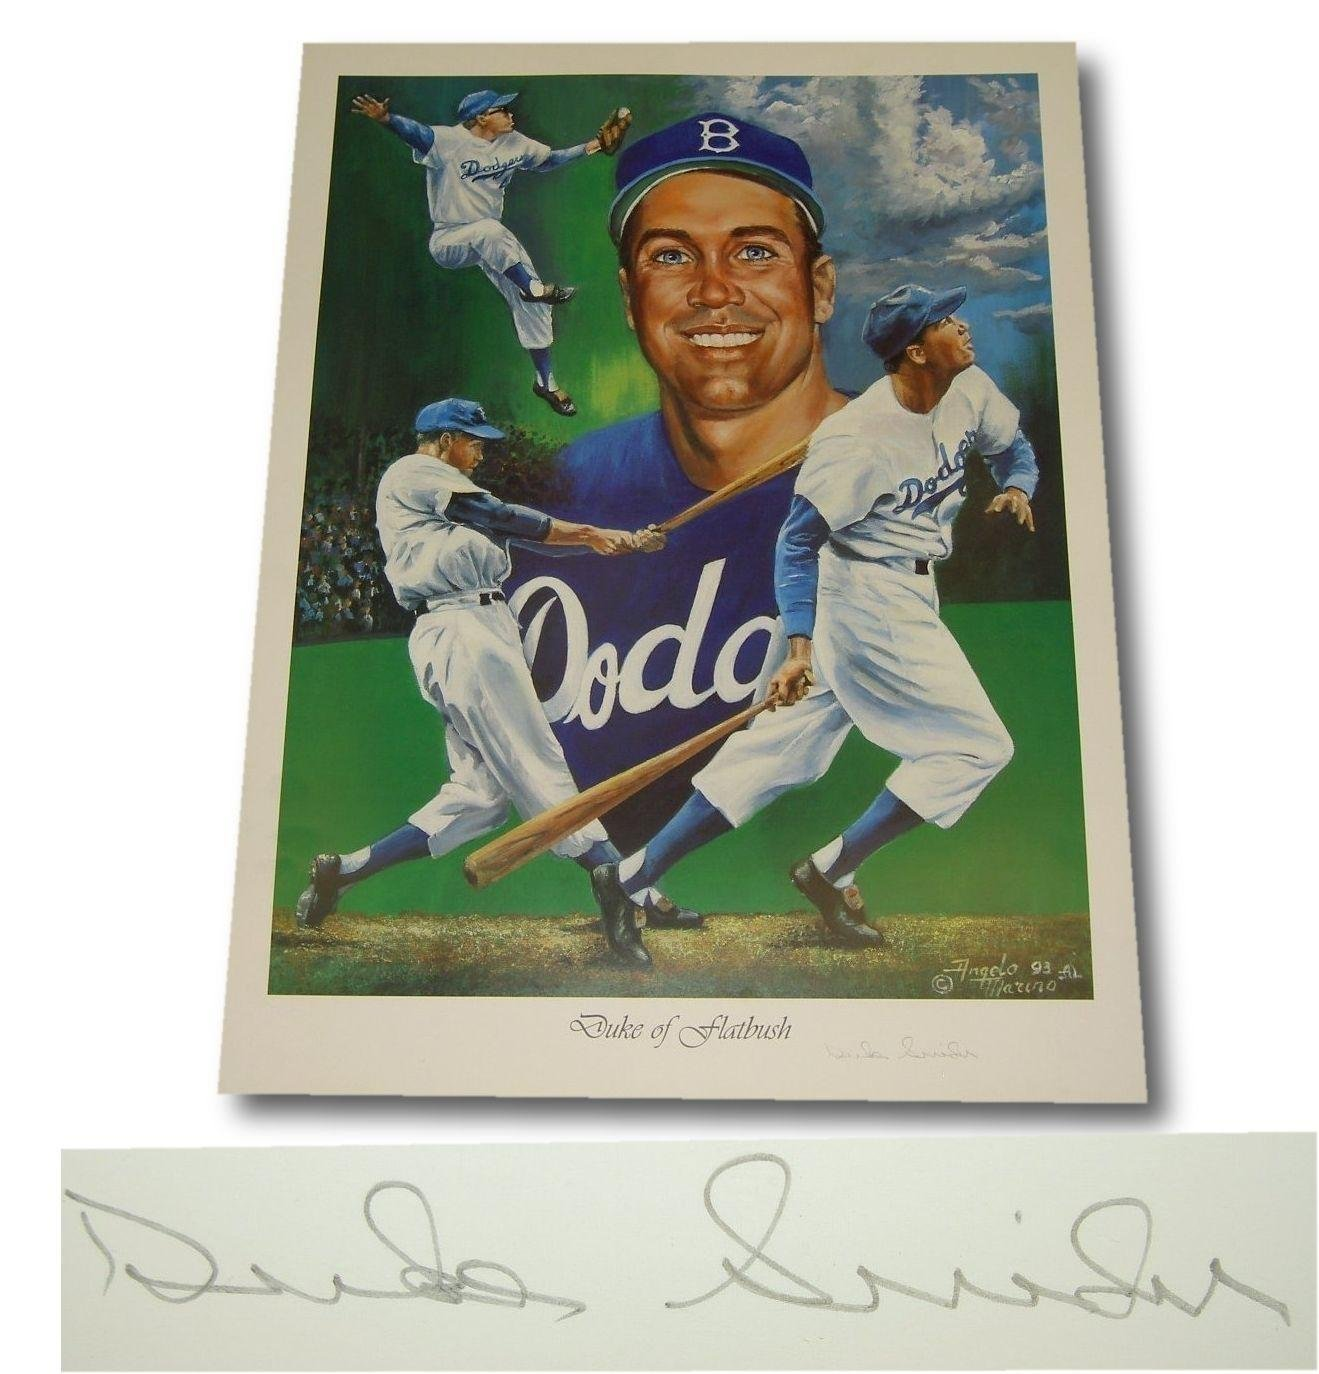 "Duke Snider Signed autographed 18x24 Lithograph Print of""The Duke of Flatbush Autographed MLB Art"